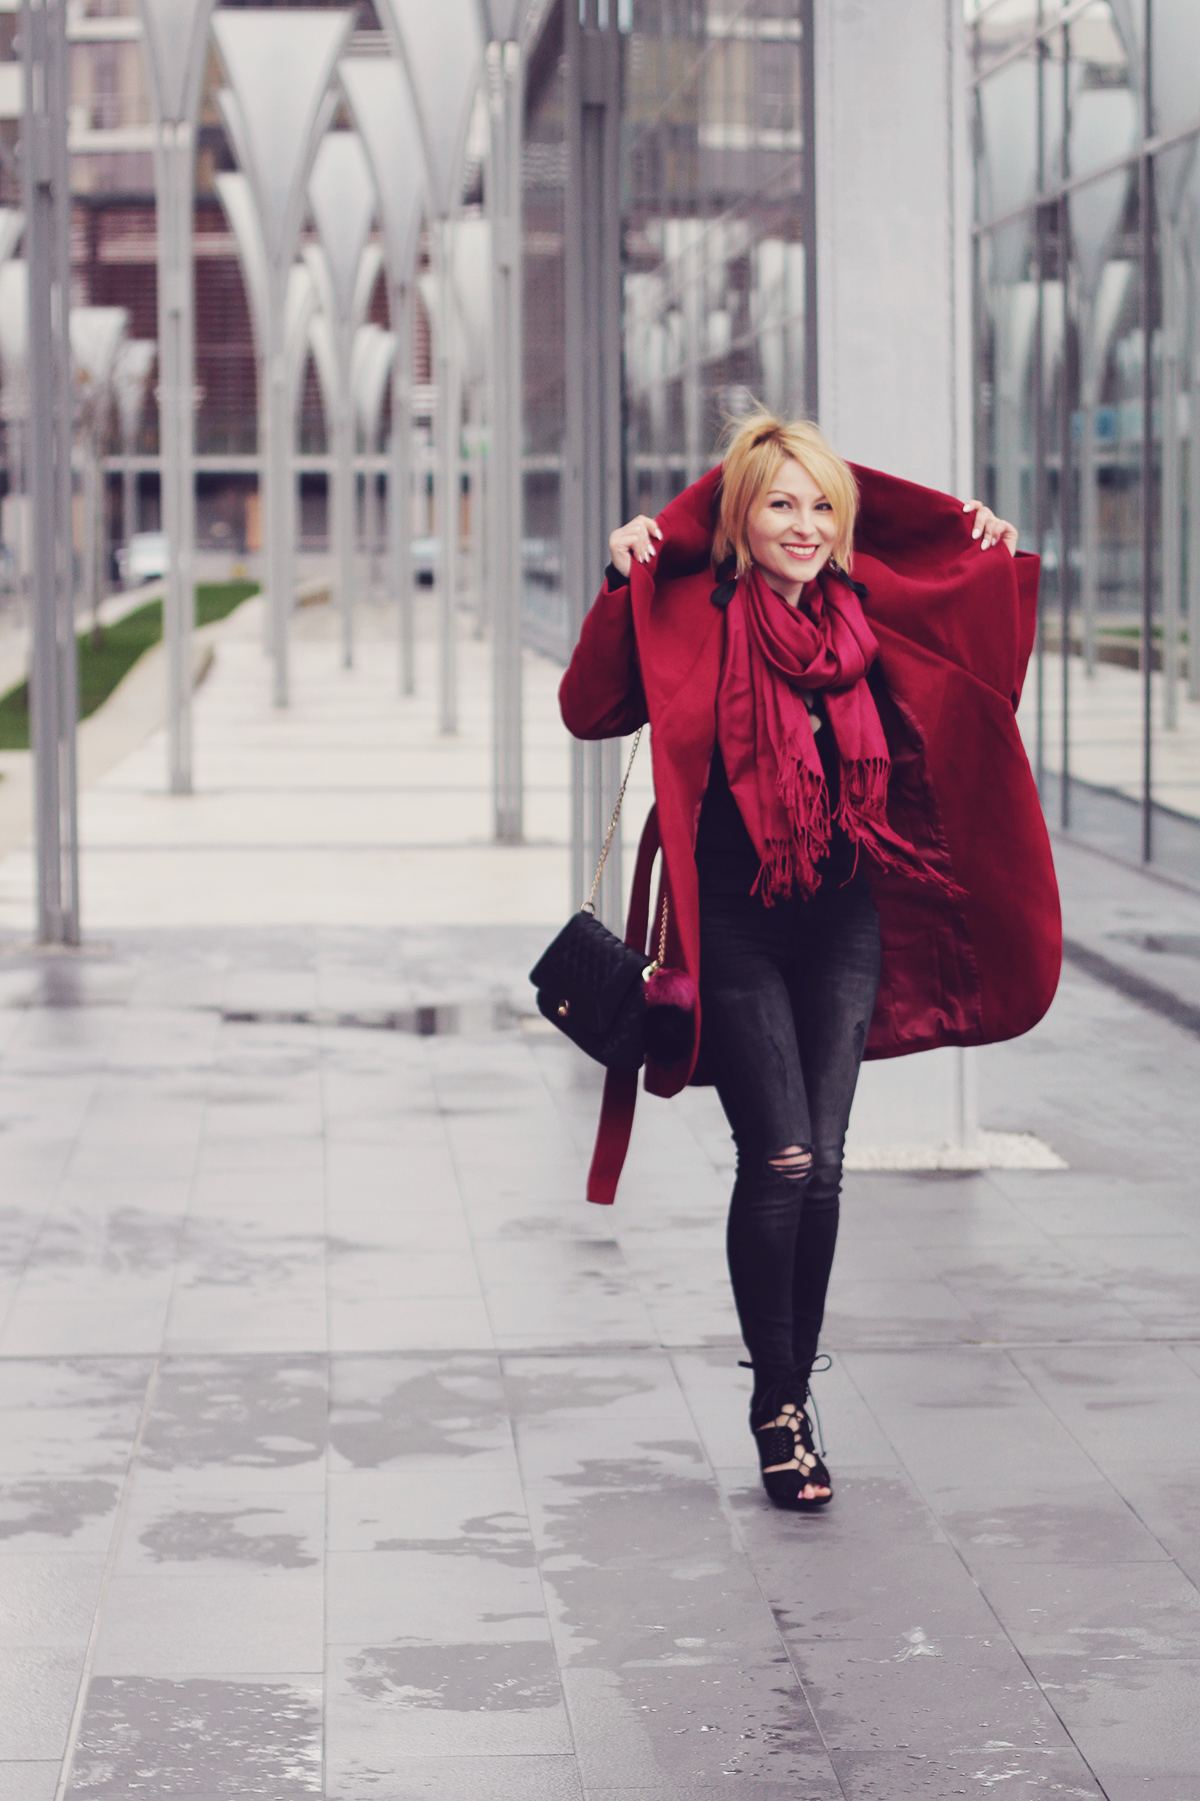 burgundy coat and scarf with jeand and high heeled sandals